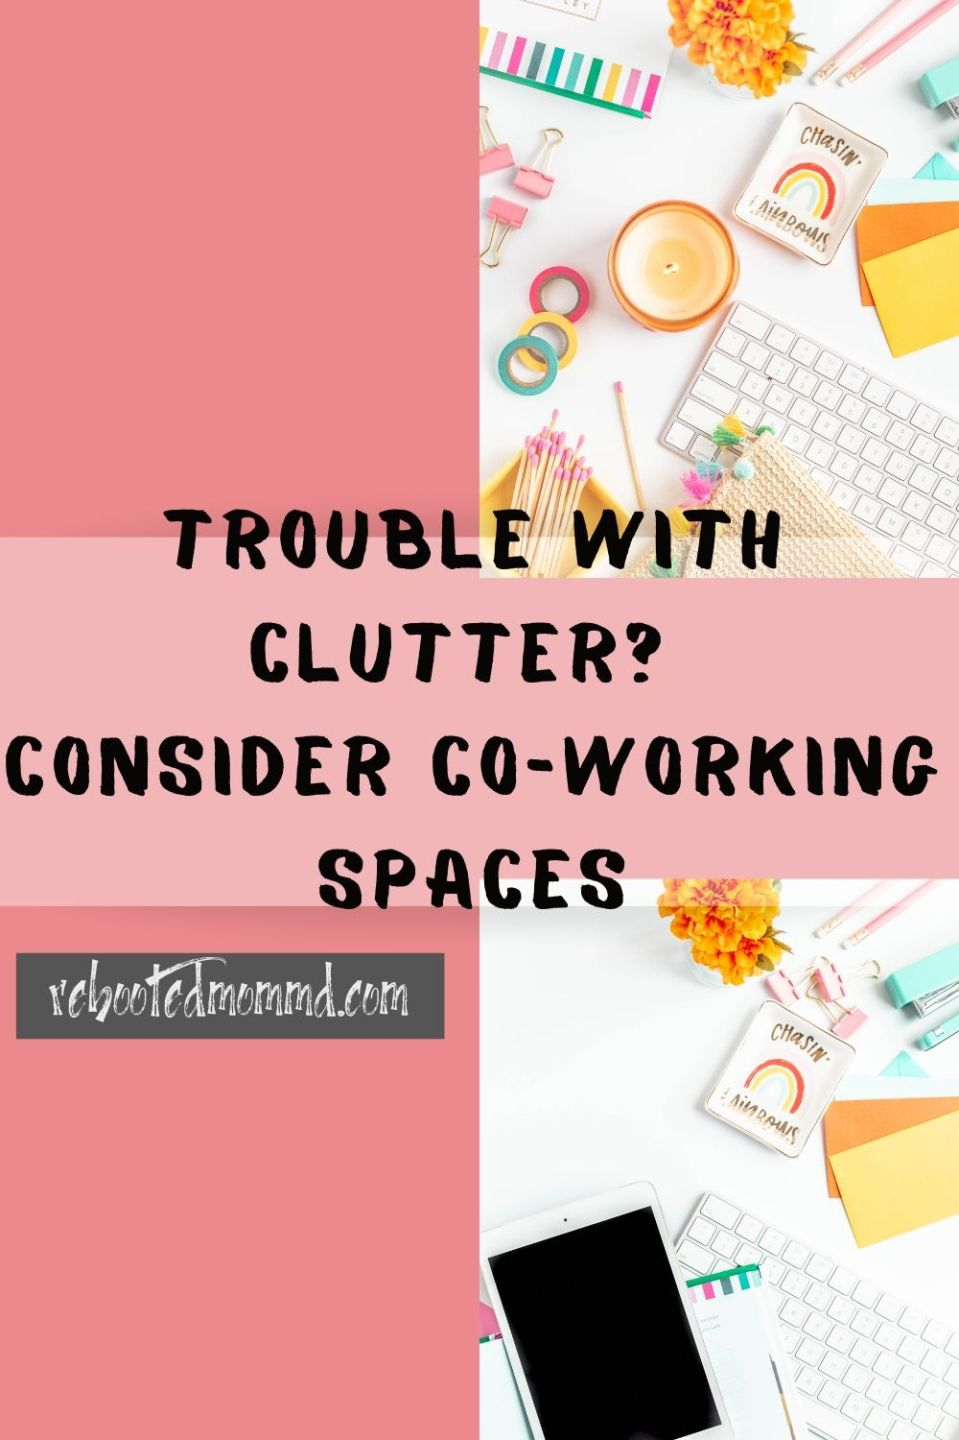 Trouble with Clutter? Invest in a Co-working Space